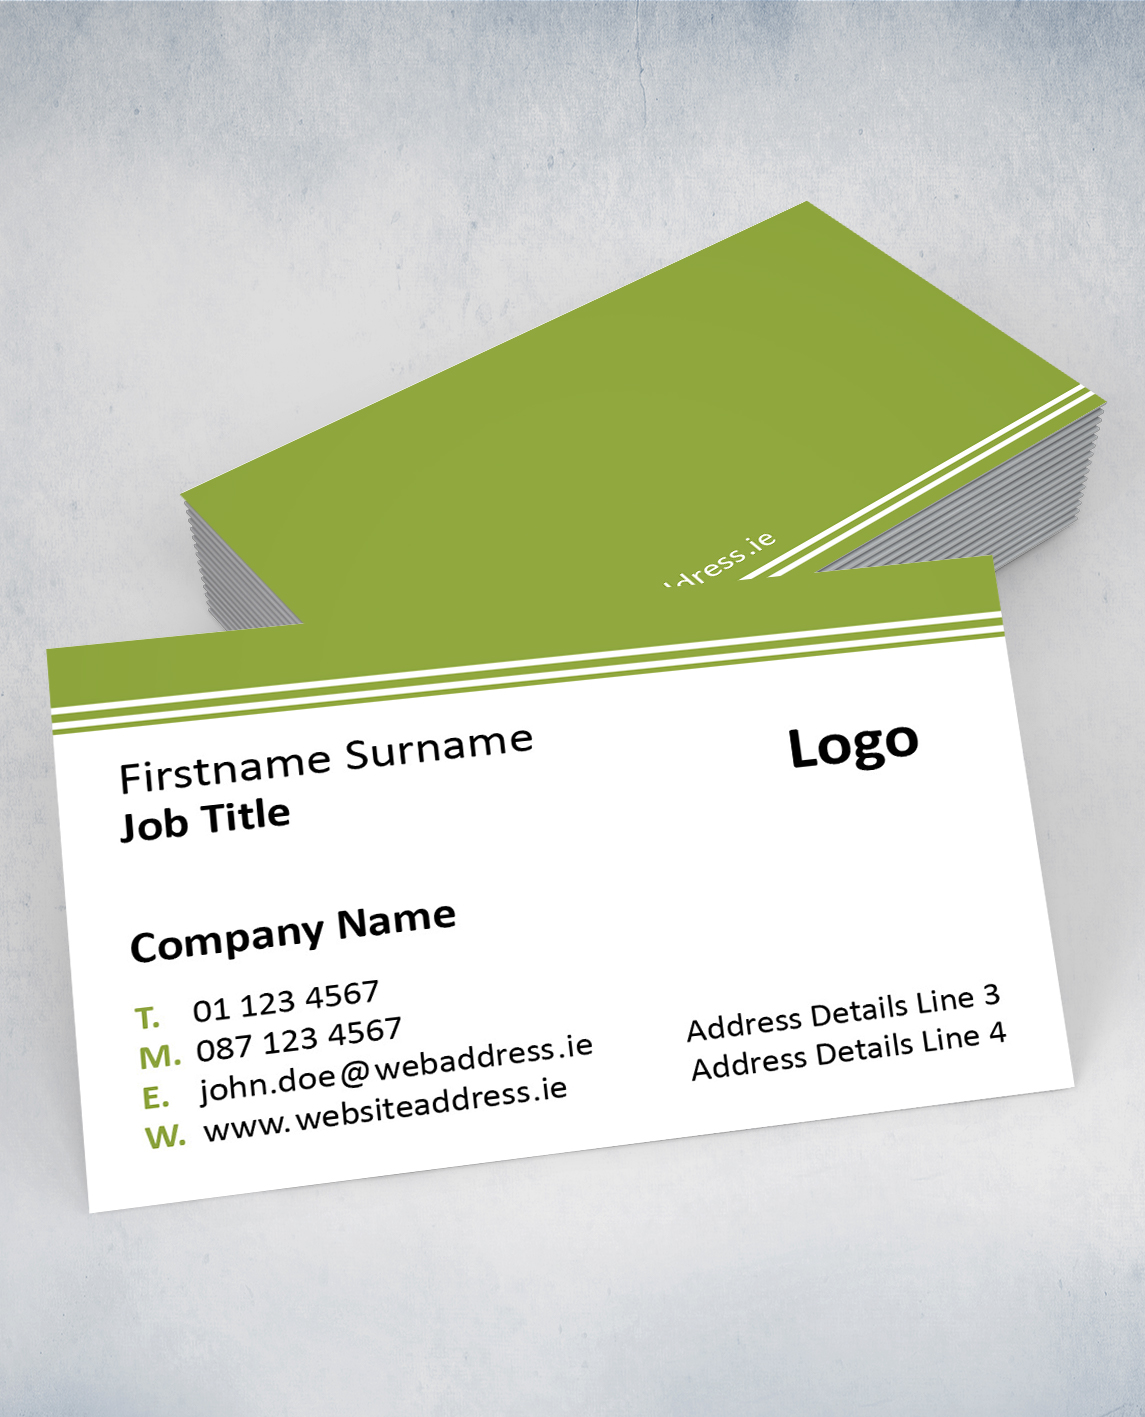 Cool business card titles for owners contemporary for Business card titles for owners